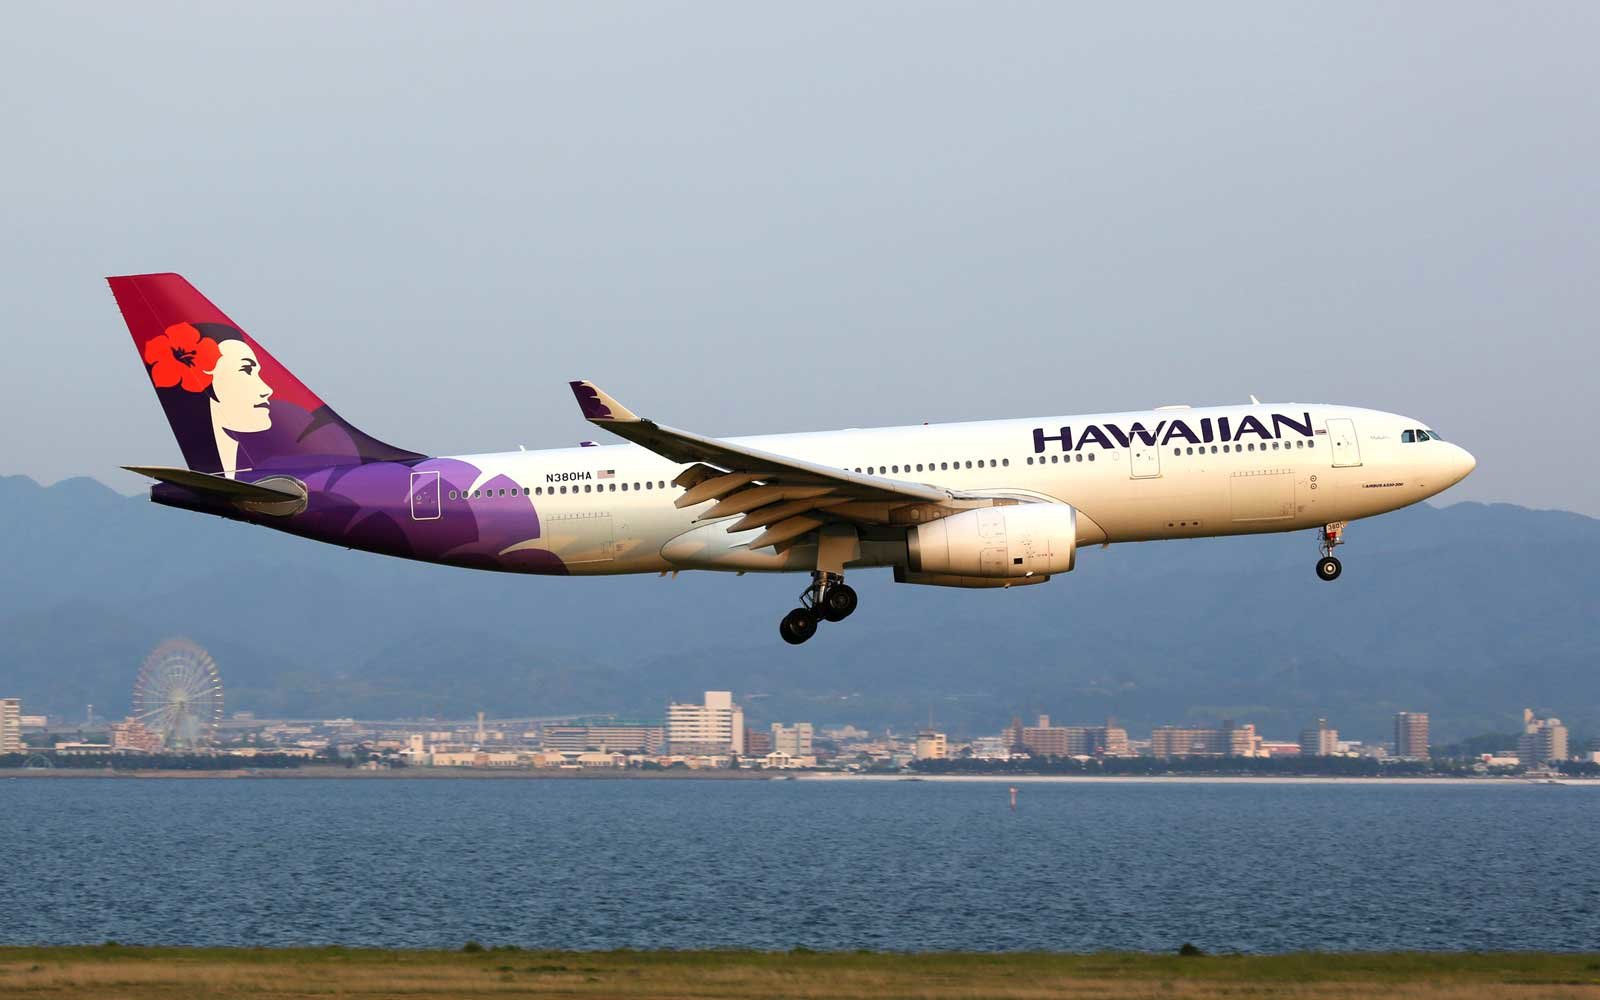 Hawaiian Airlines Airbus A330-200 airplane